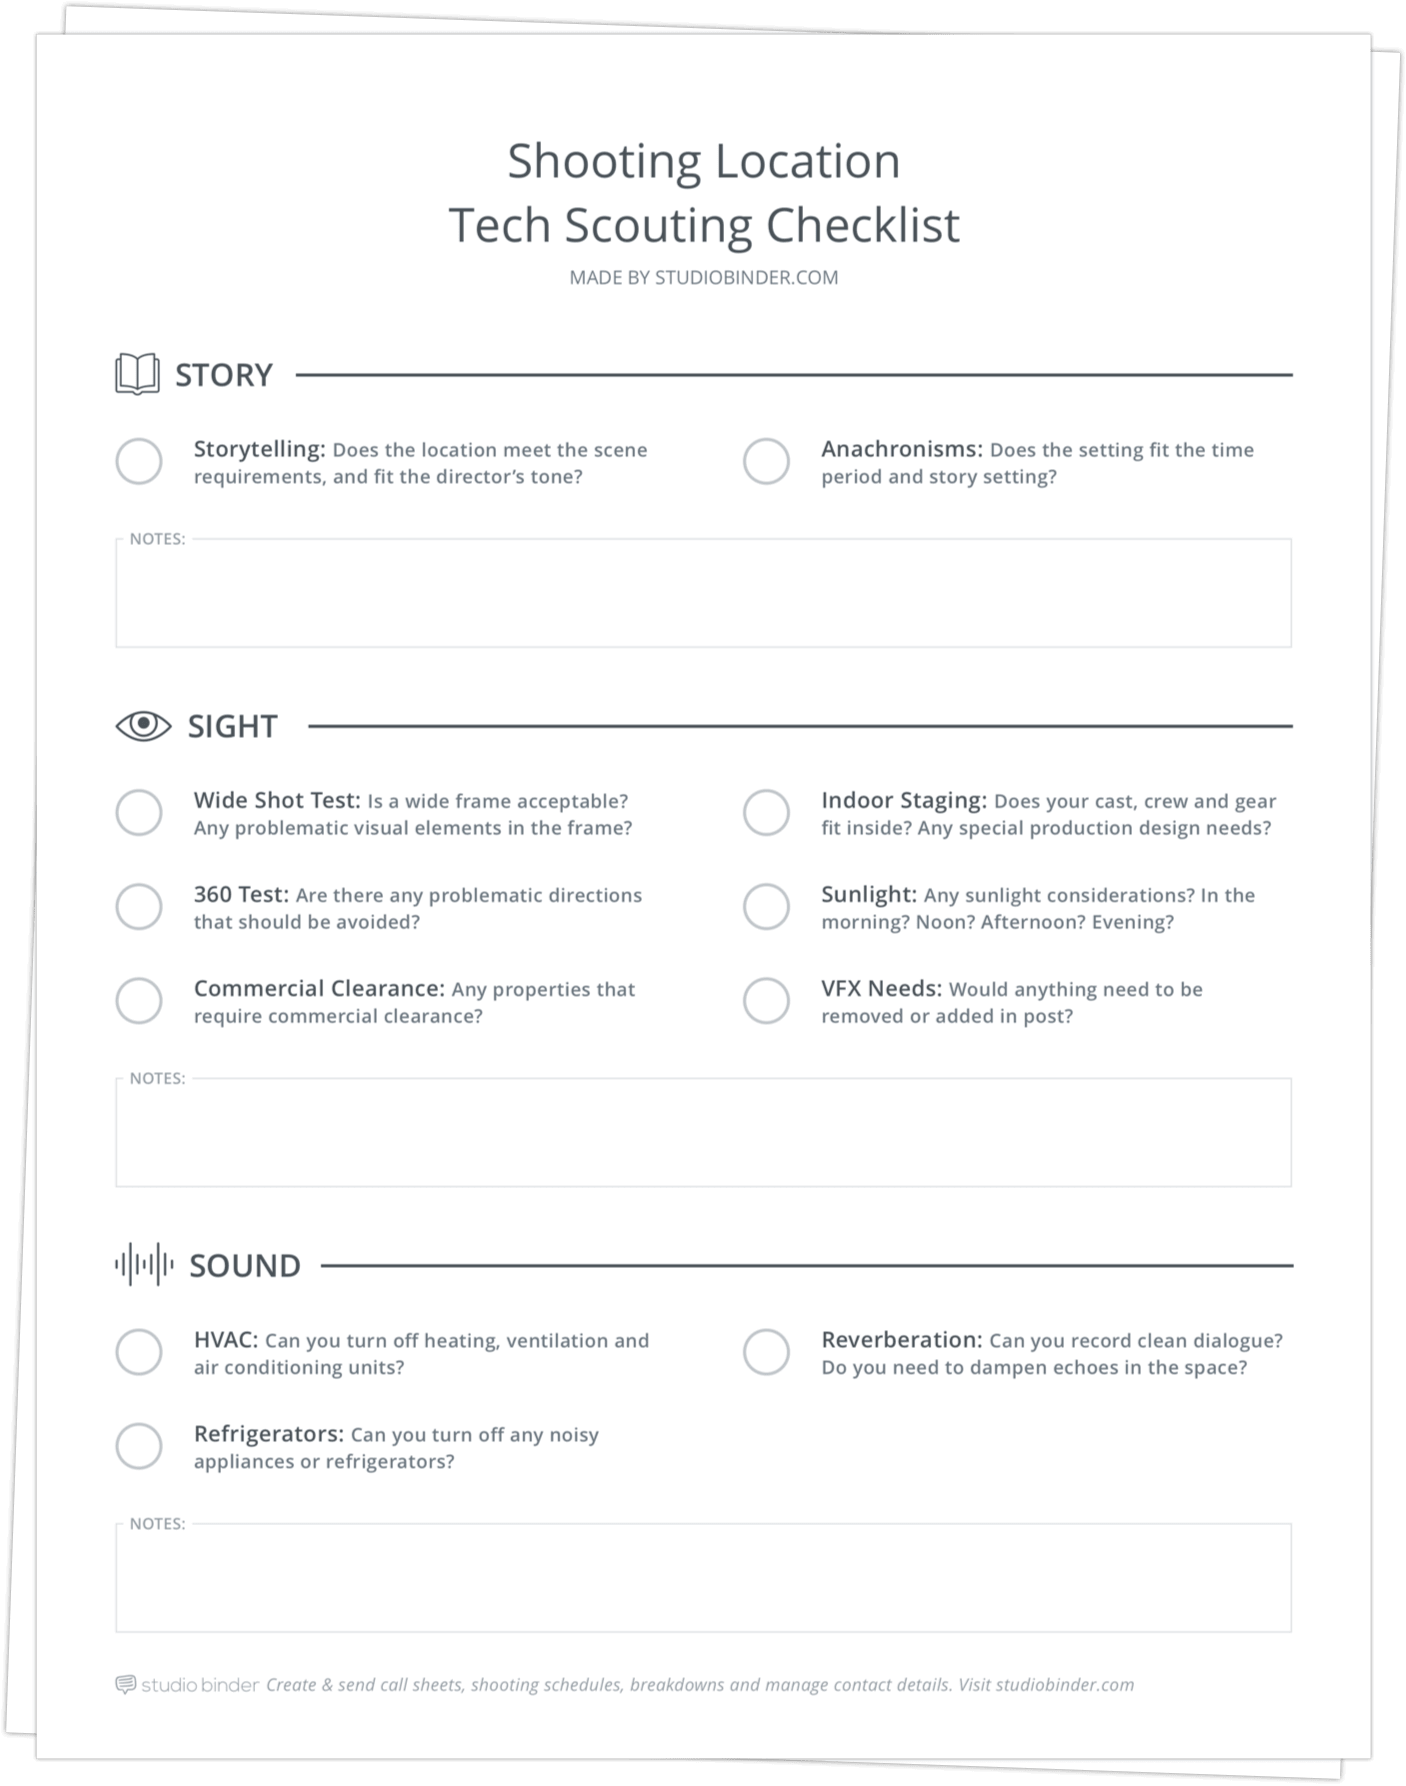 Location Tech Scouting Checklist - Stack - StudioBinder